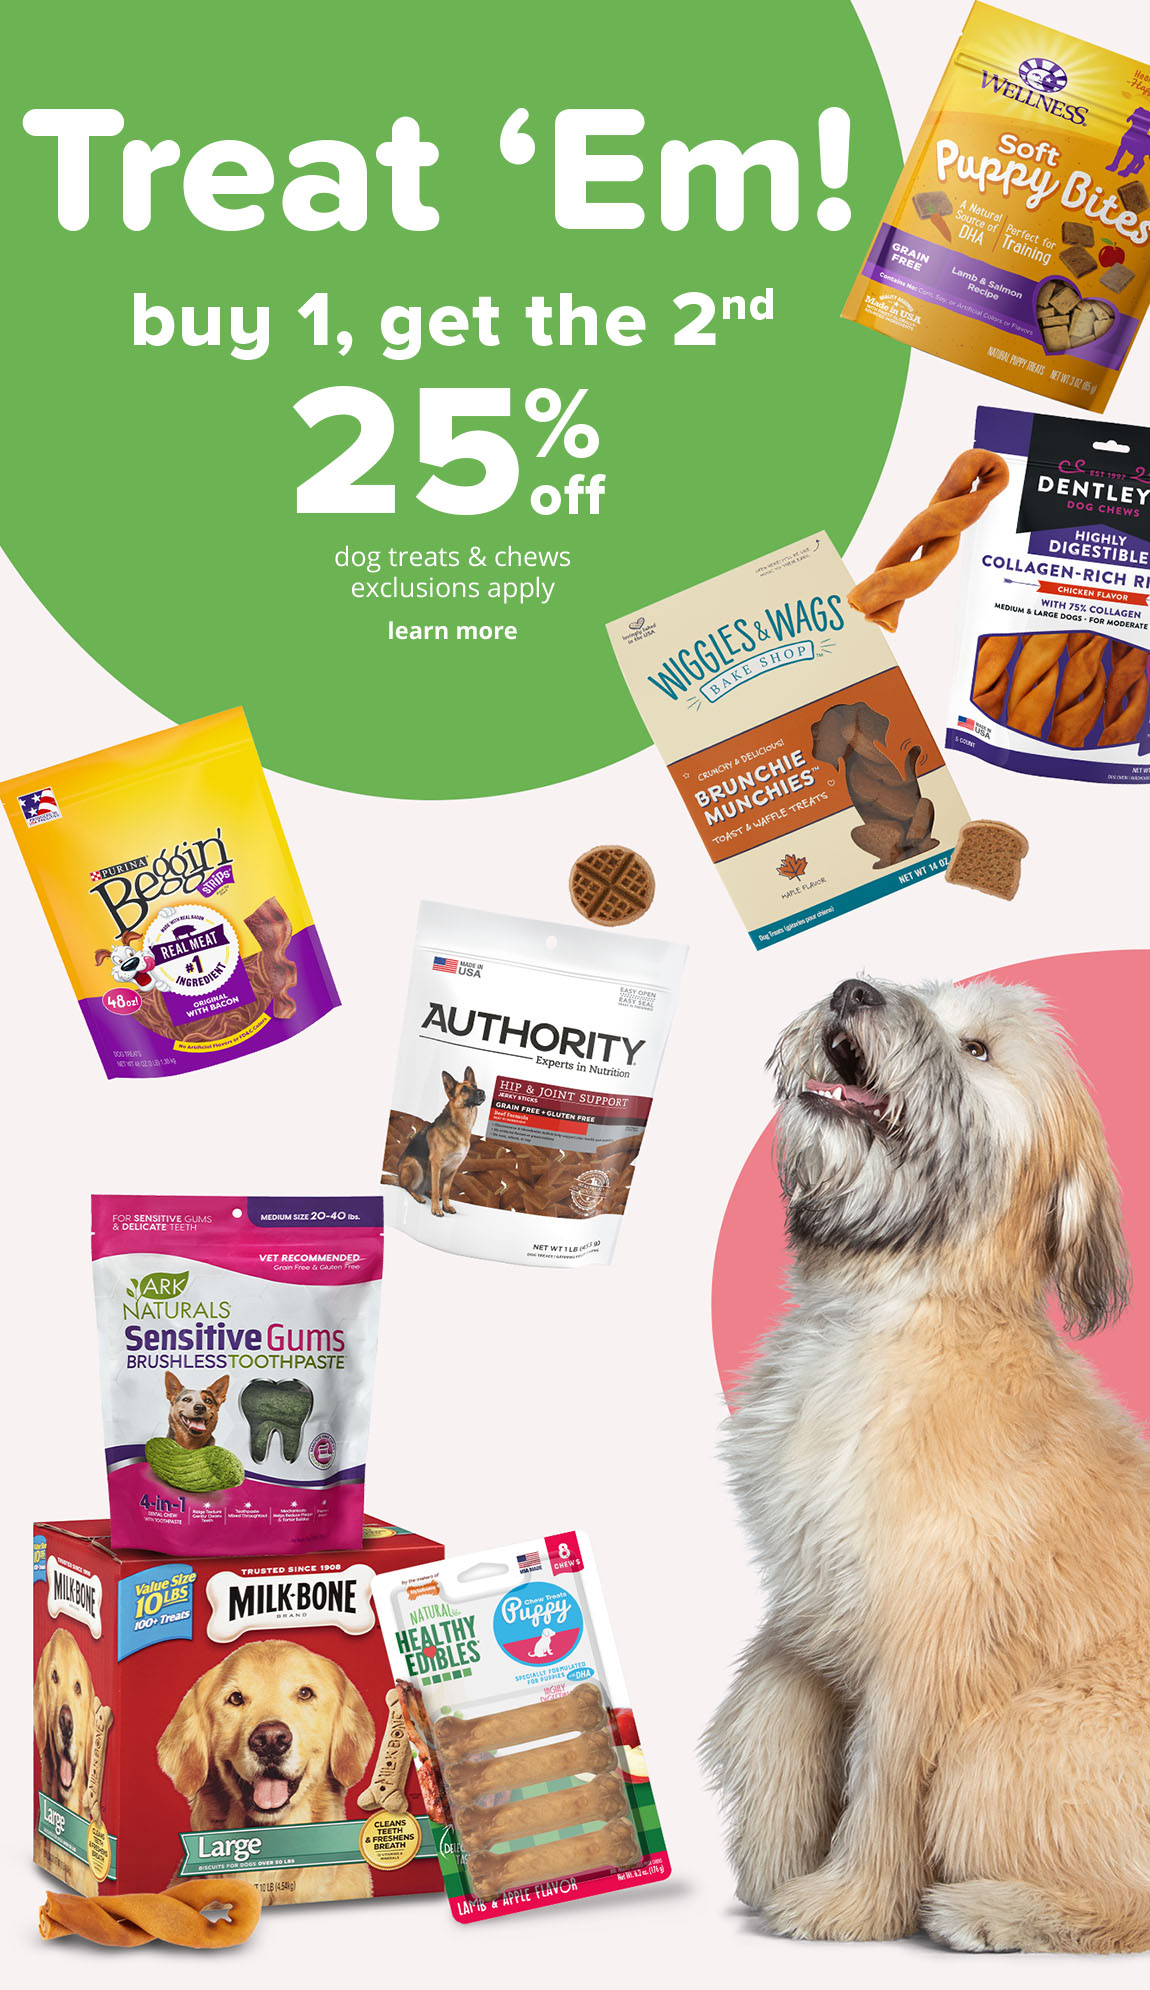 buy 1, get the 2nd  25% off dog treats & chews  exclusions apply